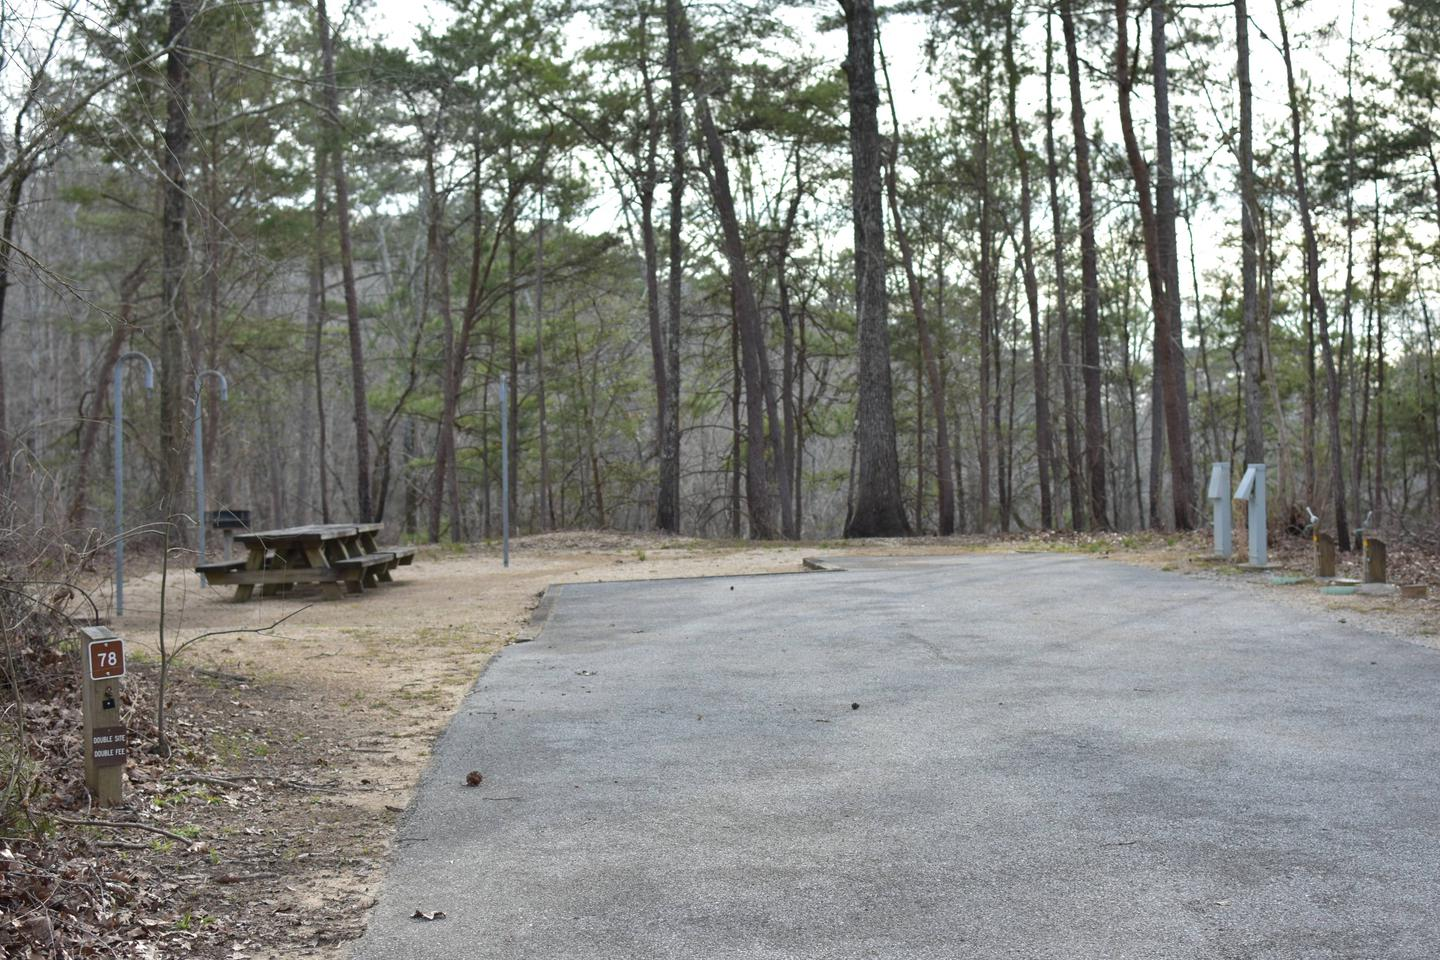 Fawn Site 78Fawn Site 78, March 1, 2020